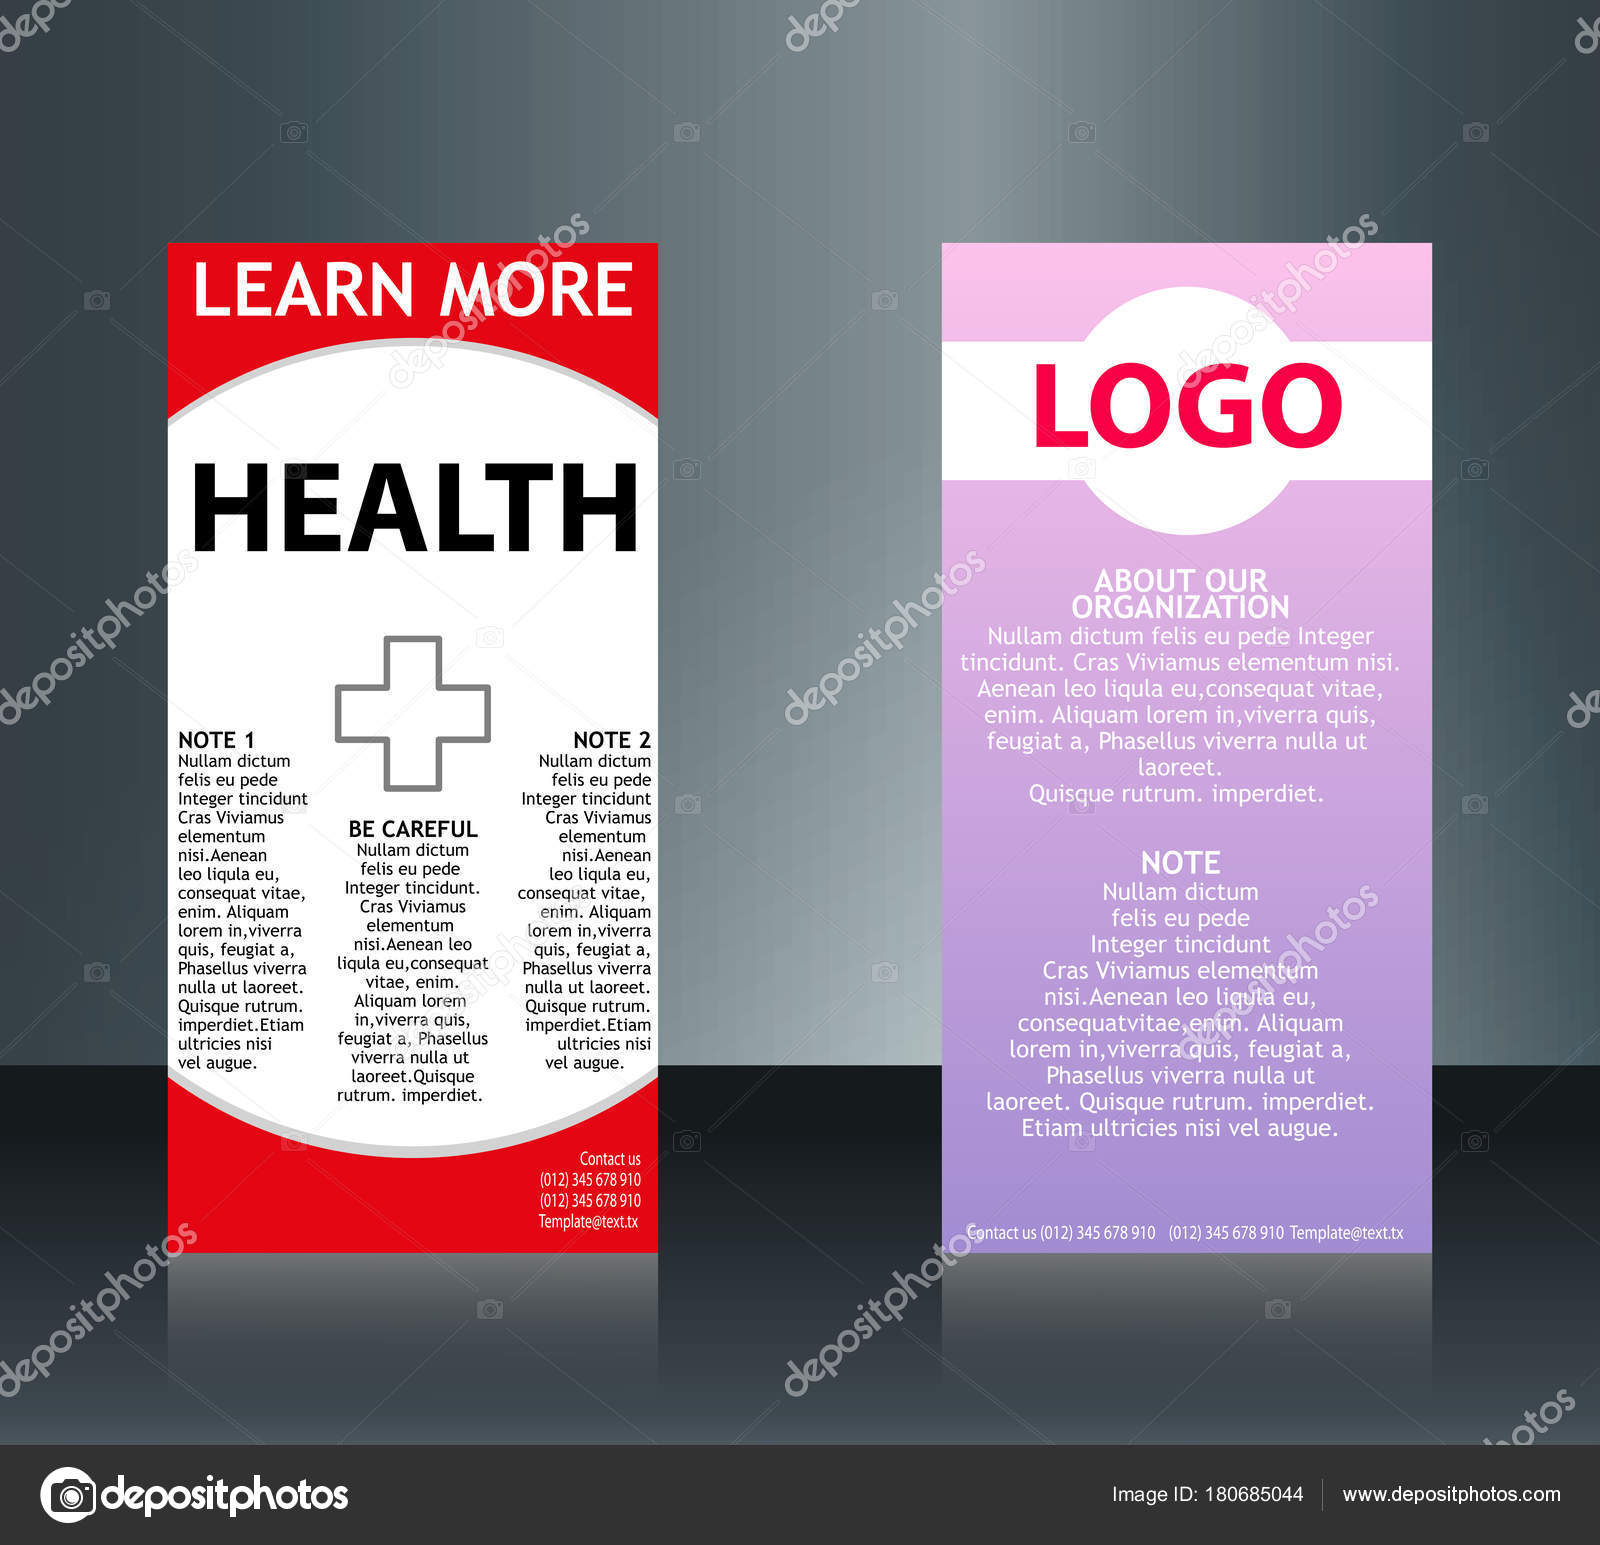 Collection De 2 Cartes Visite Medicales Abstraites Ou Sur Un Sujet Different Organiser En Horizontal EPS 10 Illustration Stock